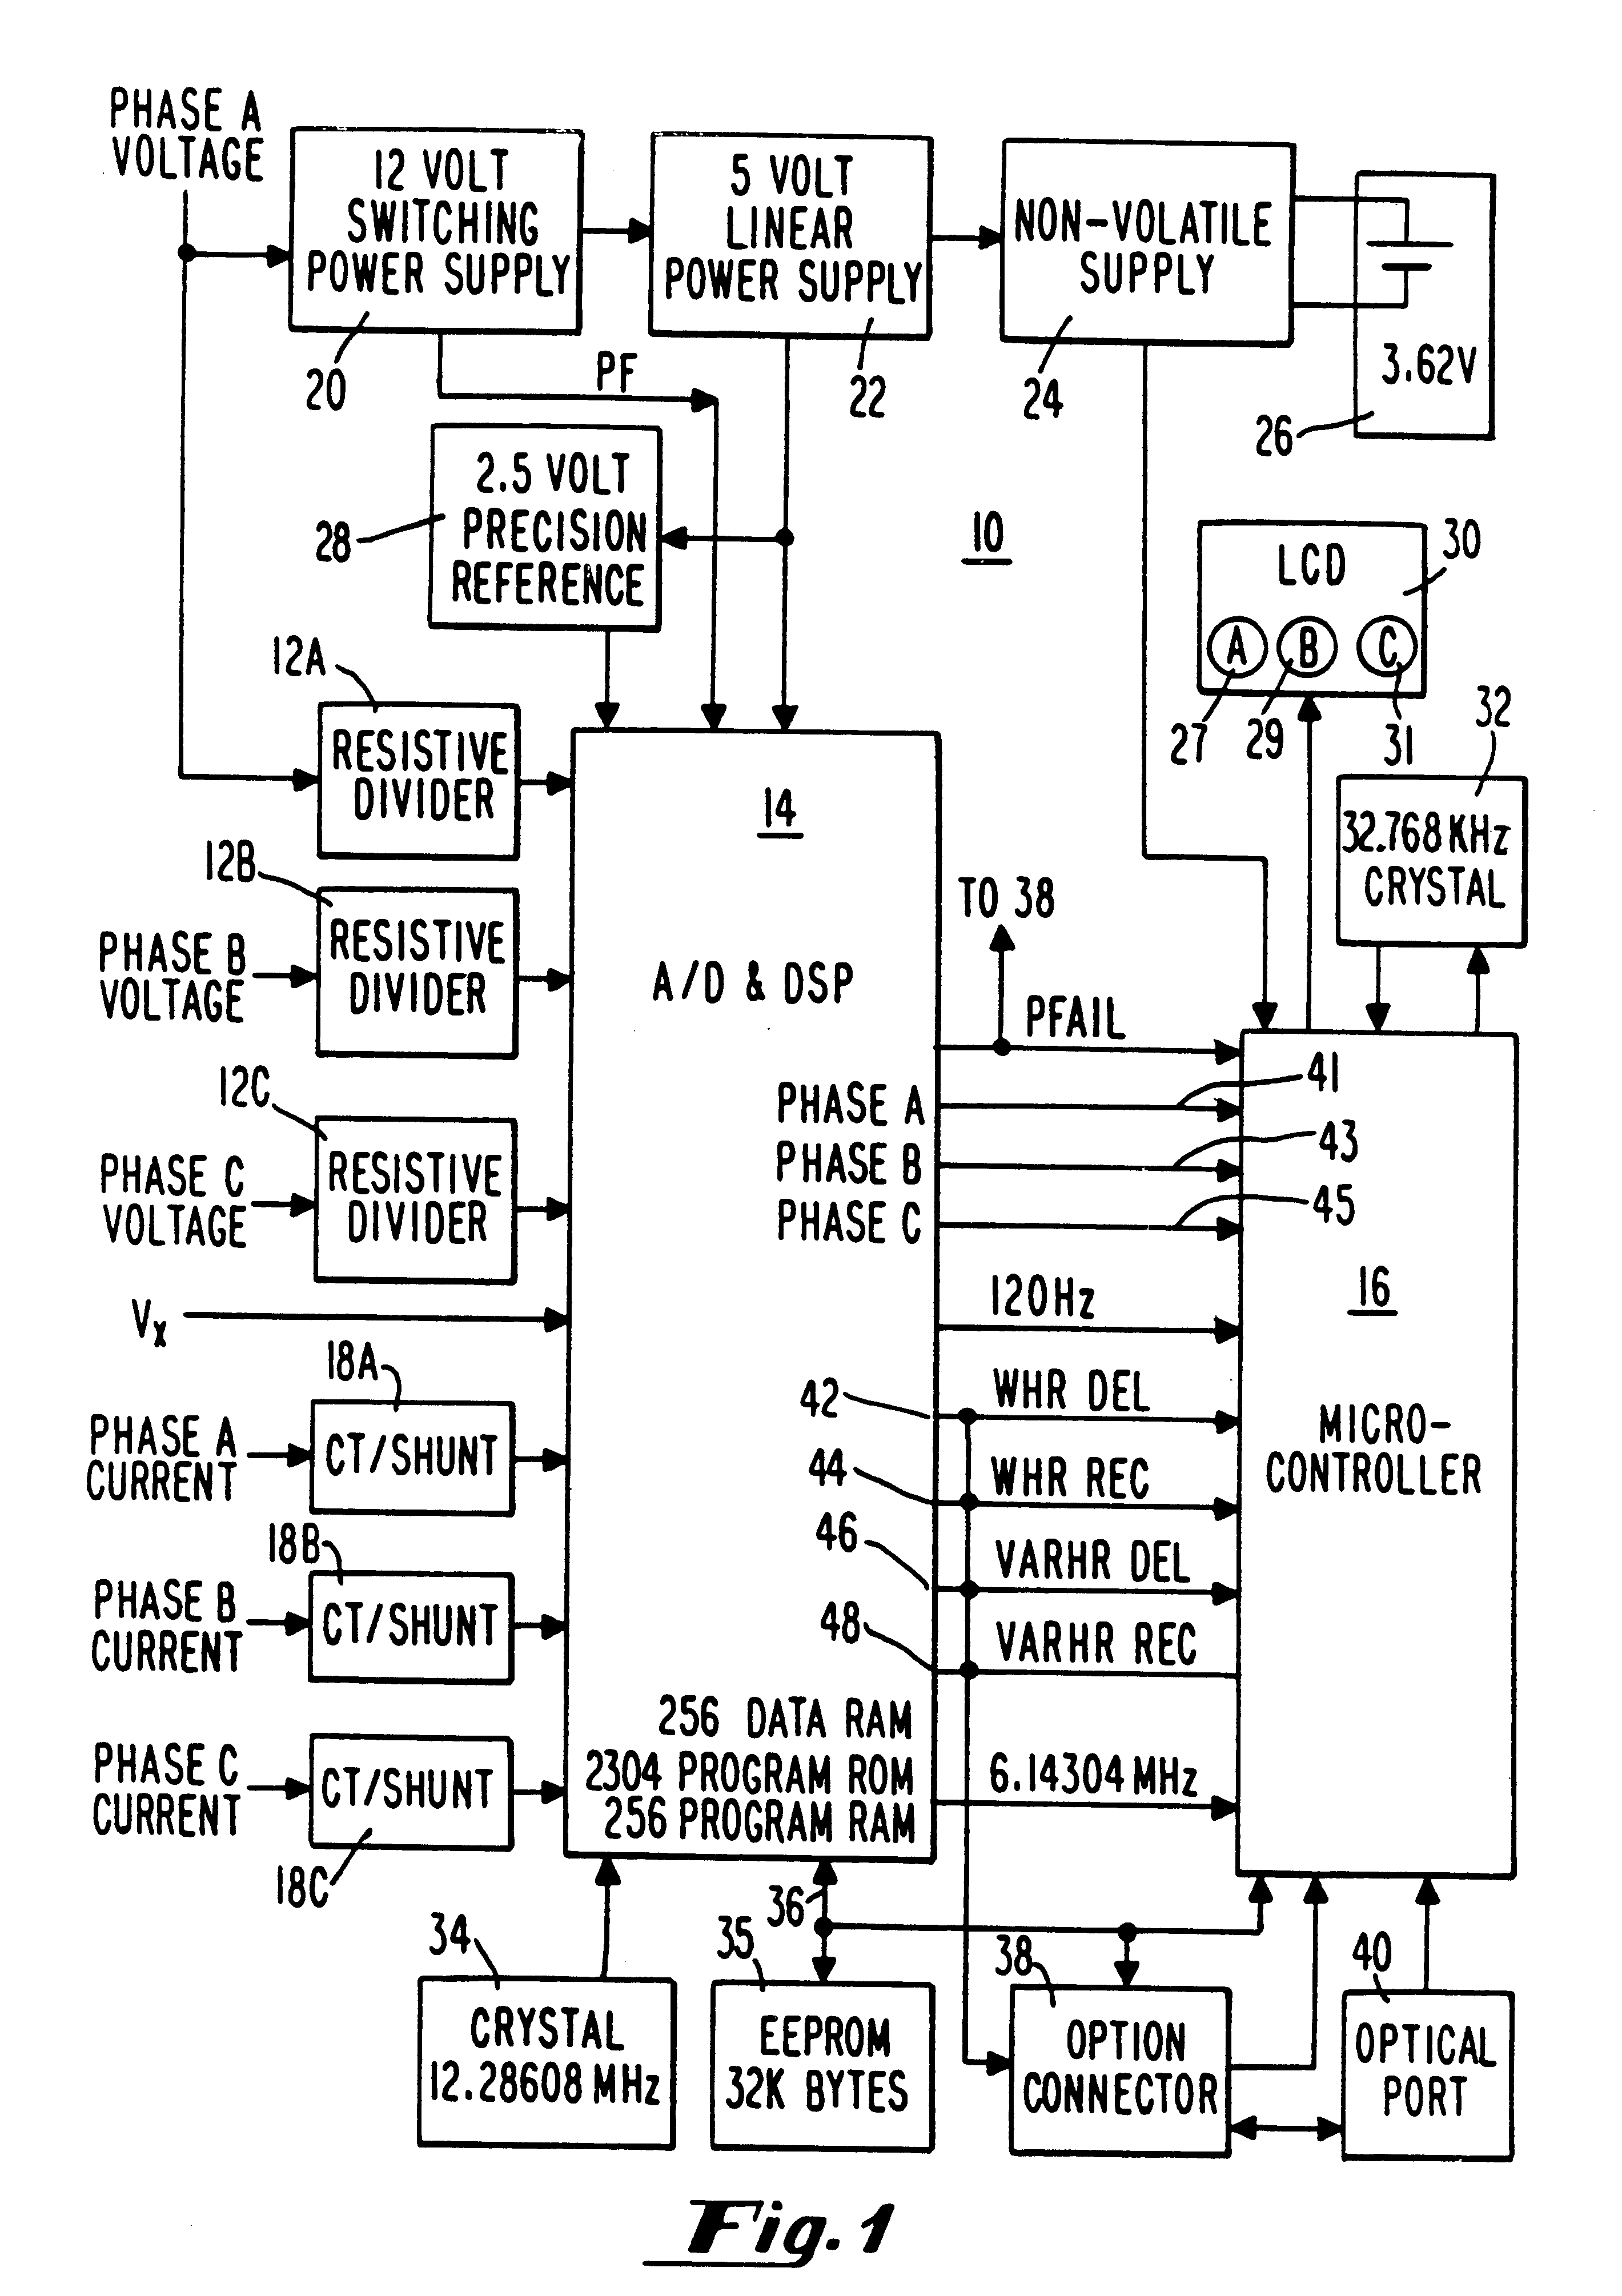 Patent Us6507794 Energy Meter With Power Quality Monitoring. Patent Drawing. Wiring. Case 222 Wiring Diagram 1 2 Hp Kohler At Scoala.co